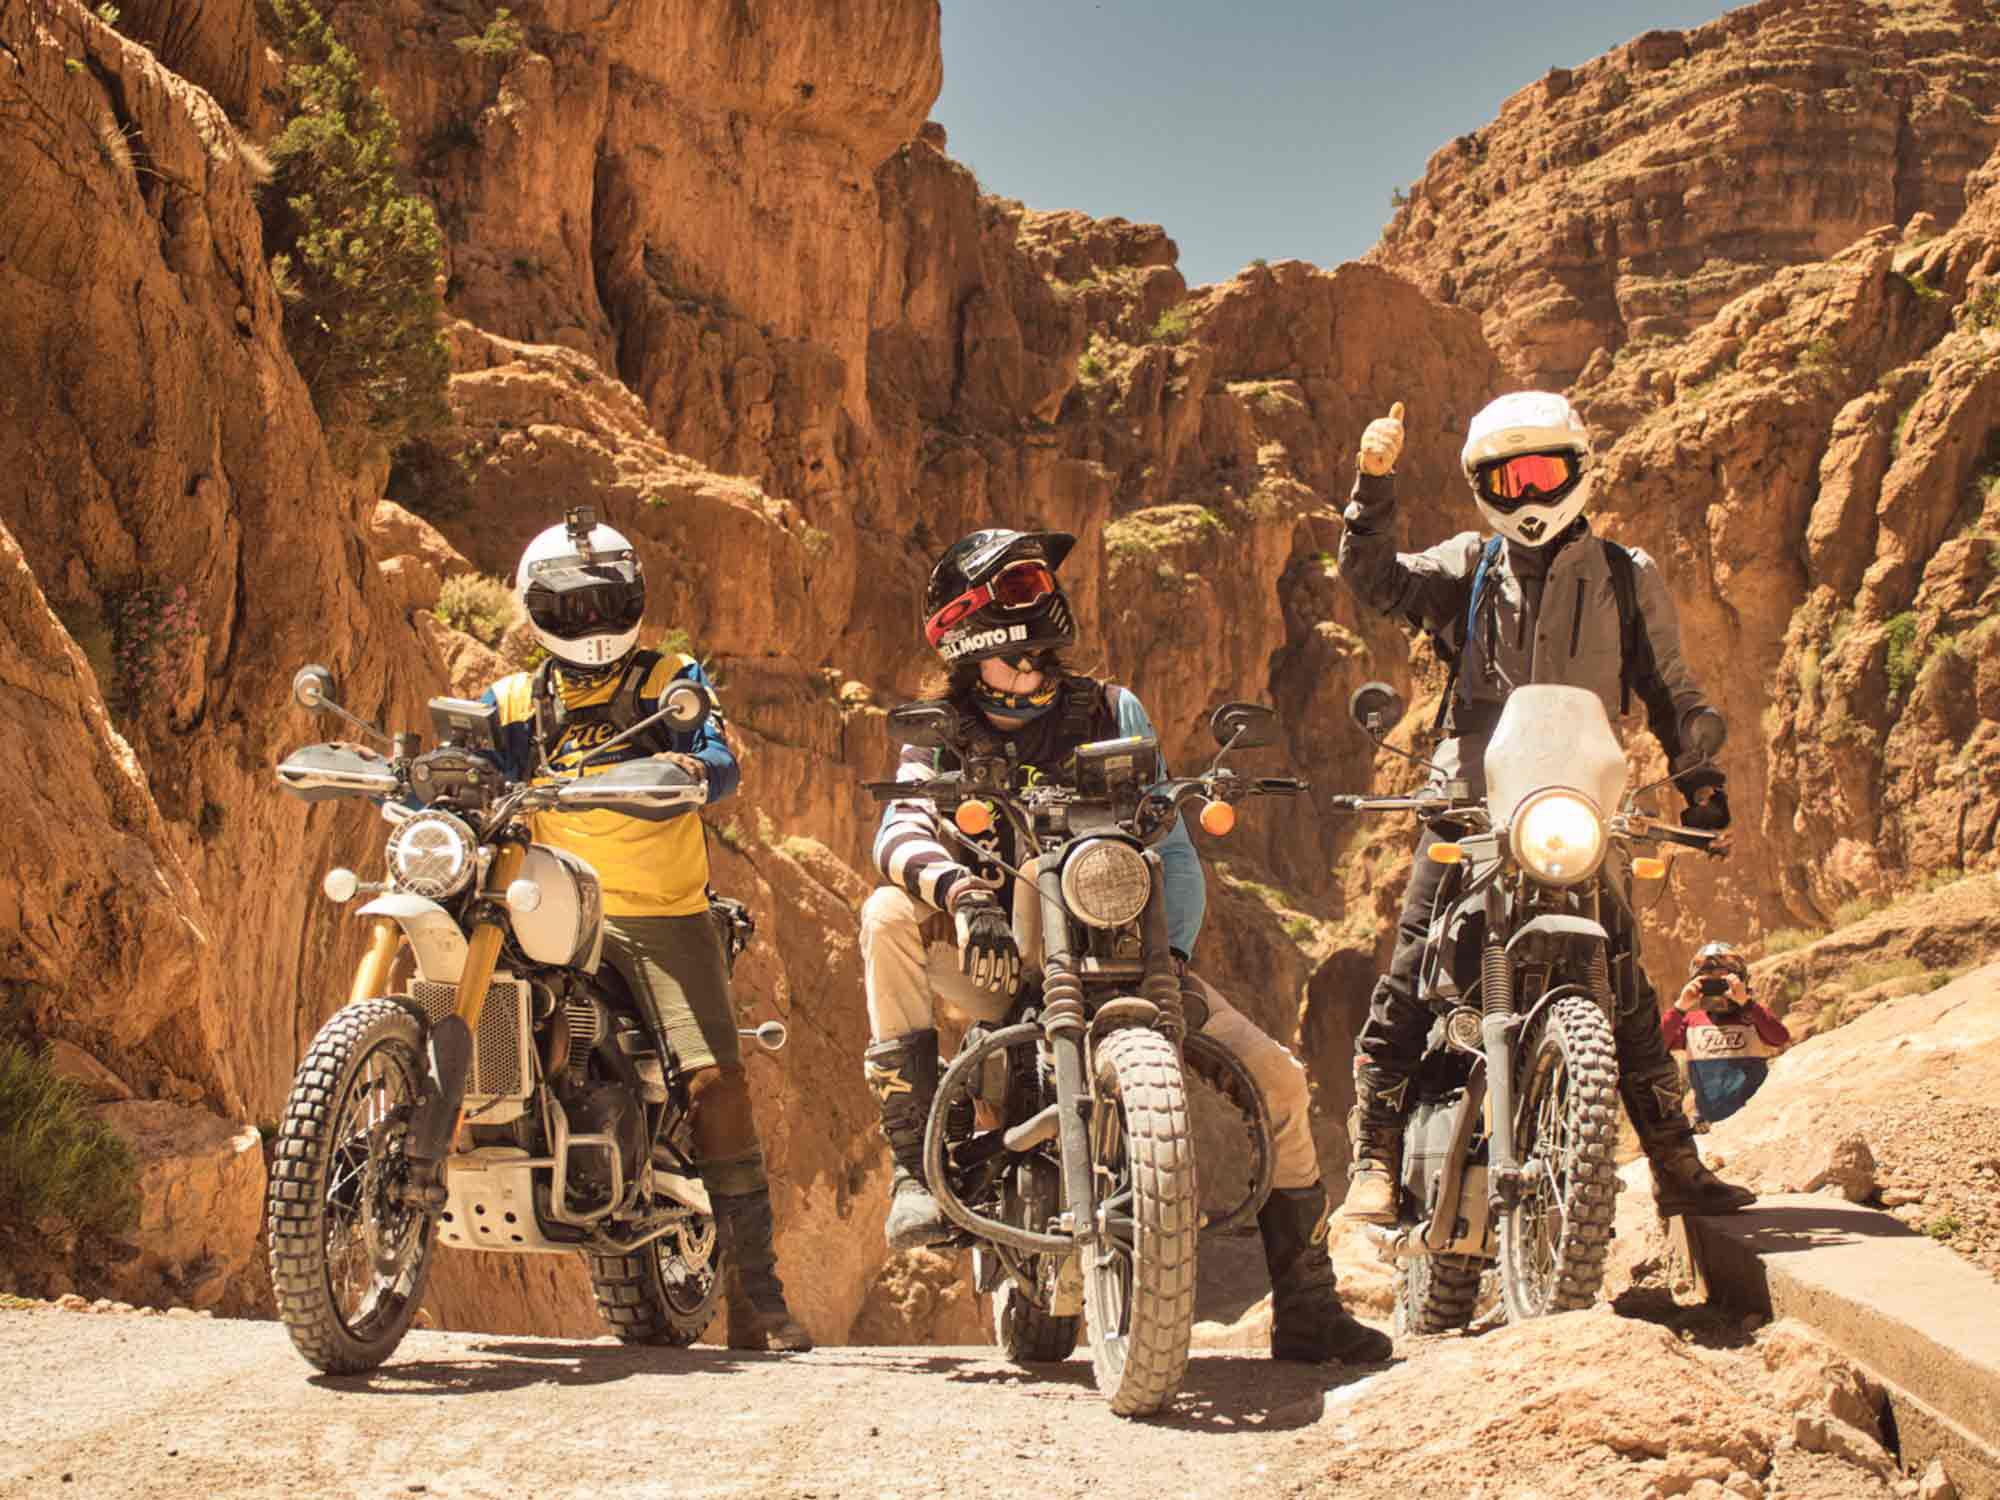 Dominik on the left on his Triumph Scrambler, me in the middle, and David on the right as we pass through Dadès Gorges.